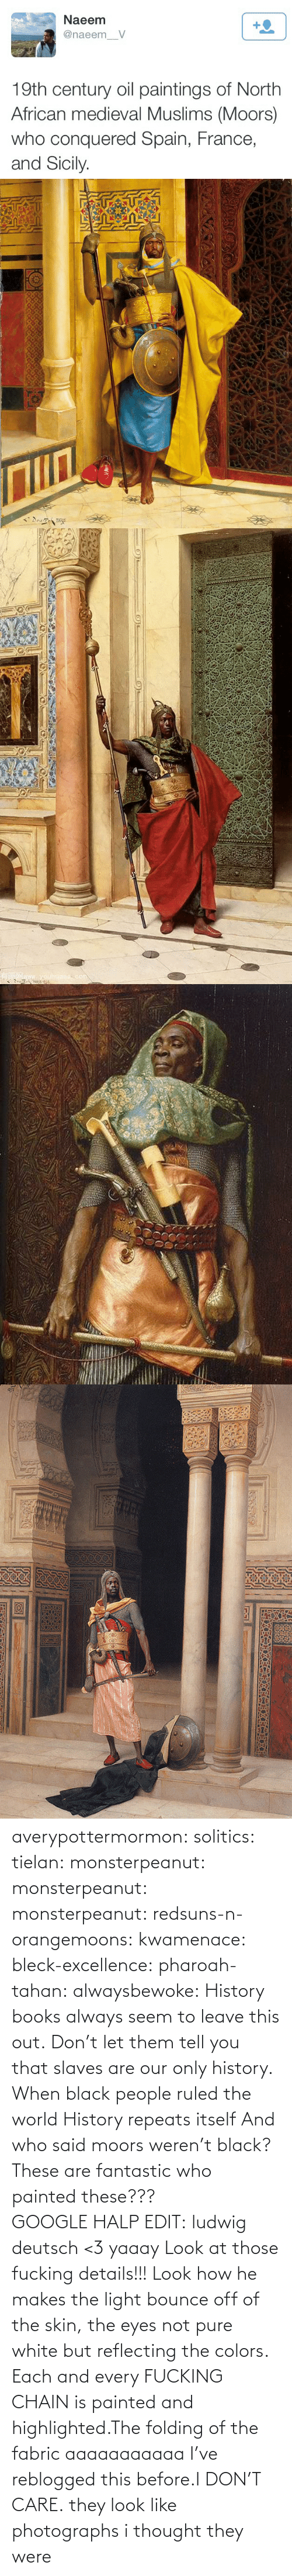 Paintings: Naeem  +2  @naeem_V  19th century oil paintings of North  African medieval Muslims (Moors)  who conquered Spain, France,  and Sicily.   Nww.youhuaua com averypottermormon: solitics:  tielan:  monsterpeanut:  monsterpeanut:  monsterpeanut:  redsuns-n-orangemoons:  kwamenace:  bleck-excellence:  pharoah-tahan:  alwaysbewoke:  History books always seem to leave this out.  Don't let them tell you that slaves are our only history.  When black people ruled the world  History repeats itself  And who said moors weren't black?  These are fantastic who painted these???GOOGLE HALP EDIT: ludwig deutsch <3   yaaay   Look at those fucking details!!! Look how he makes the light bounce off of the skin, the eyes not pure white but reflecting the colors. Each and every FUCKING CHAIN is painted and highlighted.The folding of the fabric aaaaaaaaaaa  I've reblogged this before.I DON'T CARE.  they look like photographs   i thought they were